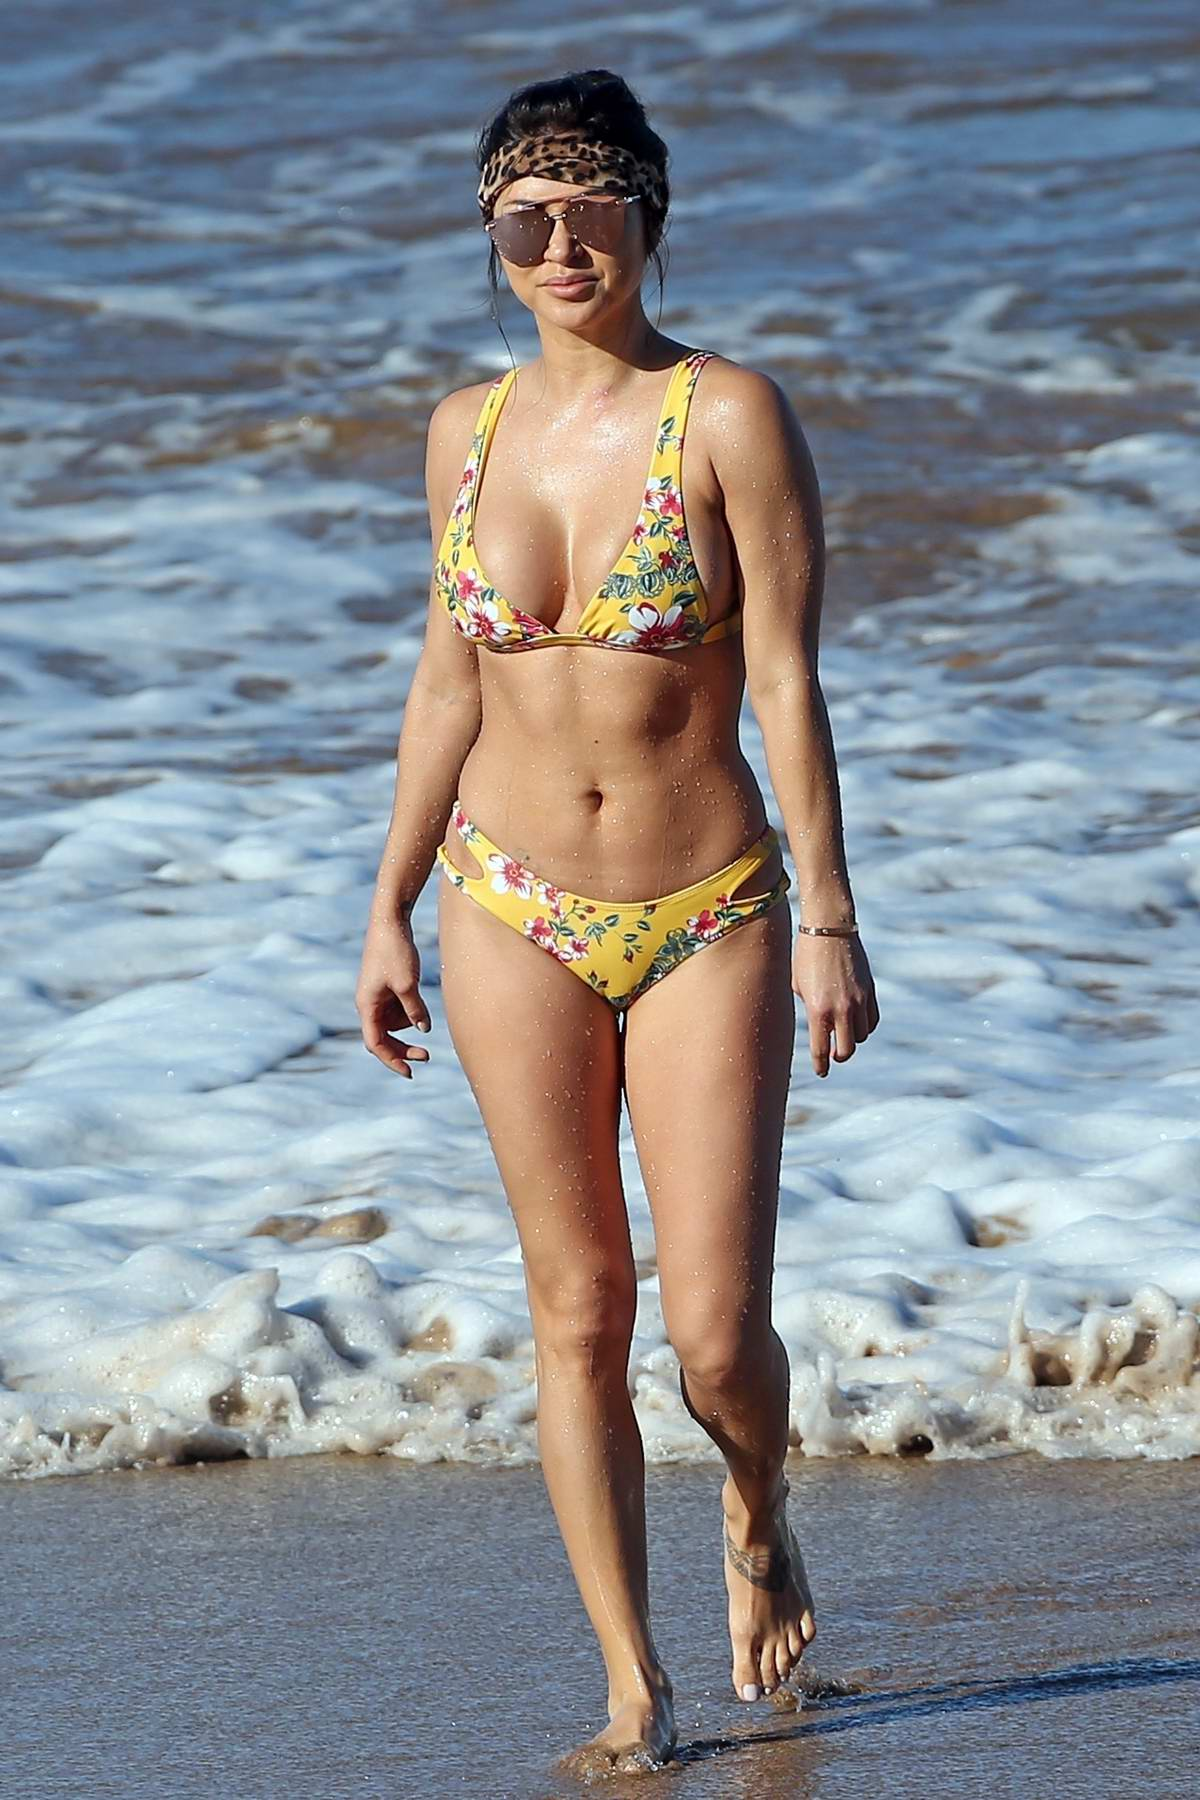 Arianny Celeste enjoys the ocean in a yellow floral print bikini while on vacation in Maui, Hawaii